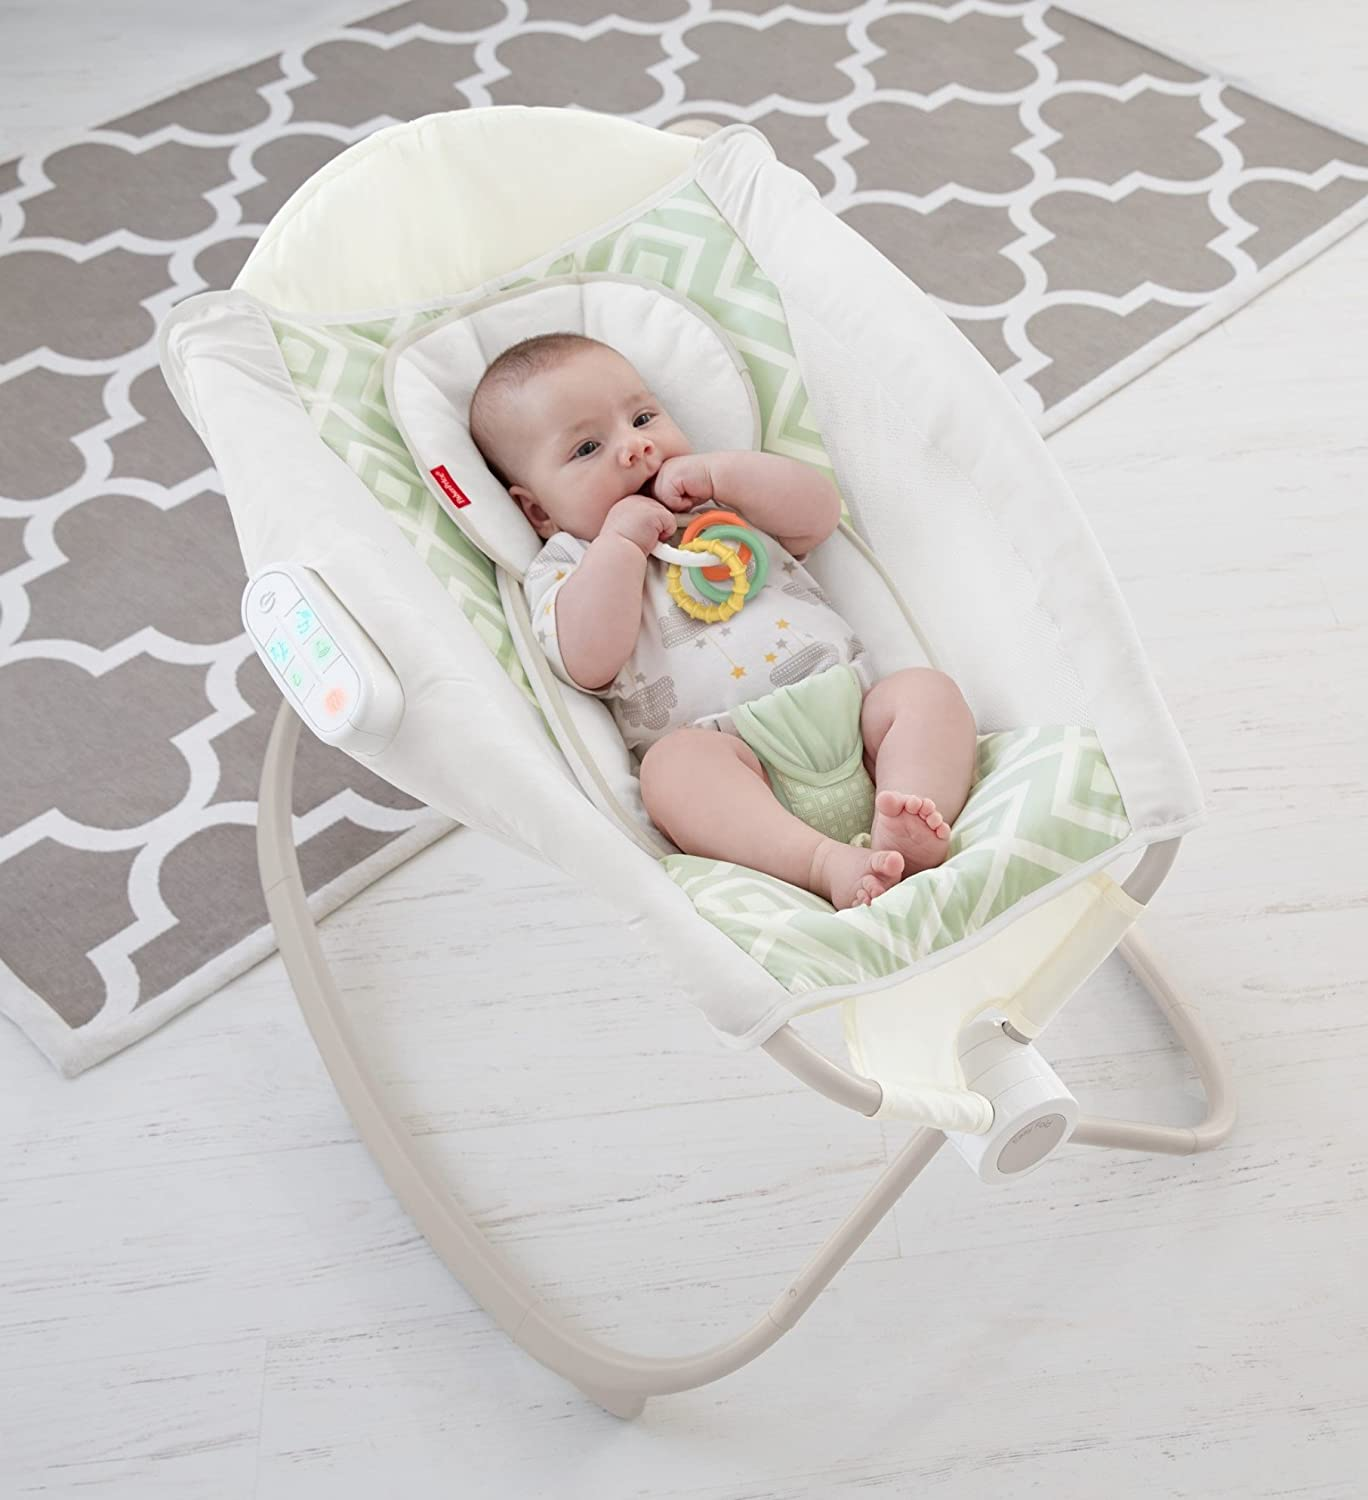 Fisher-Price Deluxe Newborn Auto Rock n Play Sleeper with Smart Connect by Fisher-Price: Amazon.es: Bebé